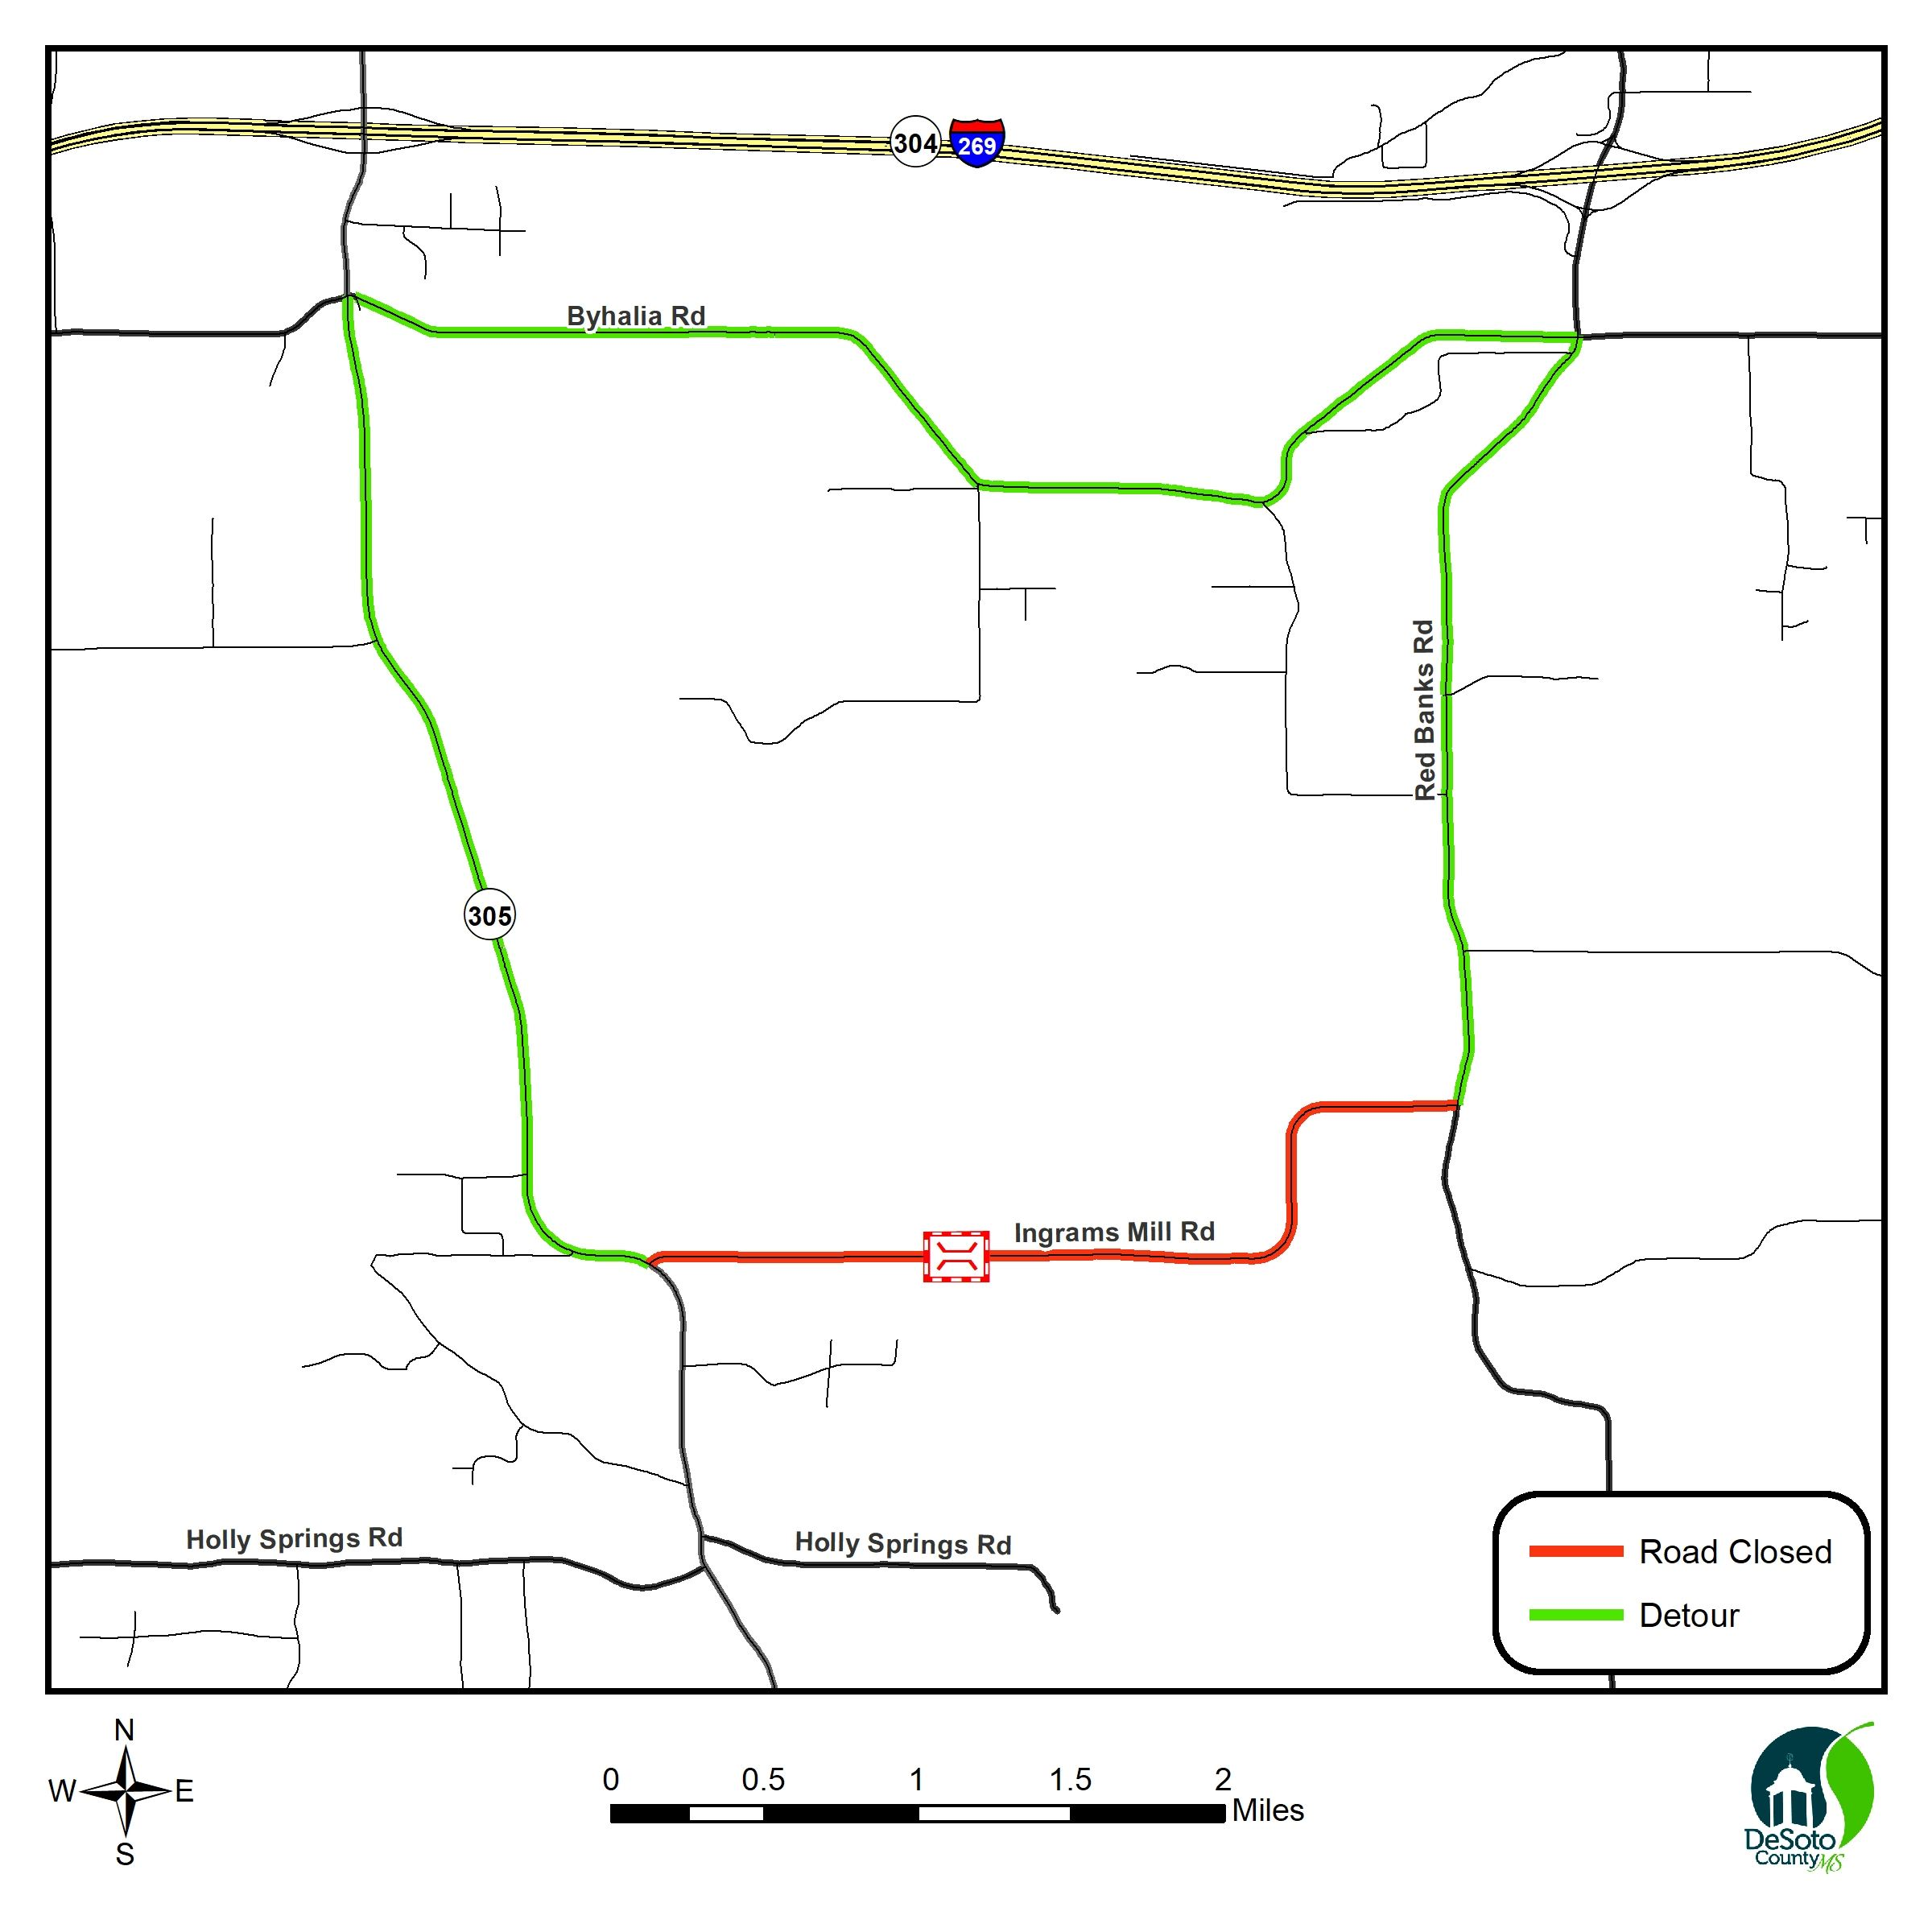 Map of  Ingrams Mill Closure between Highway 305 and Red Banks road and Detour across Byhalia road